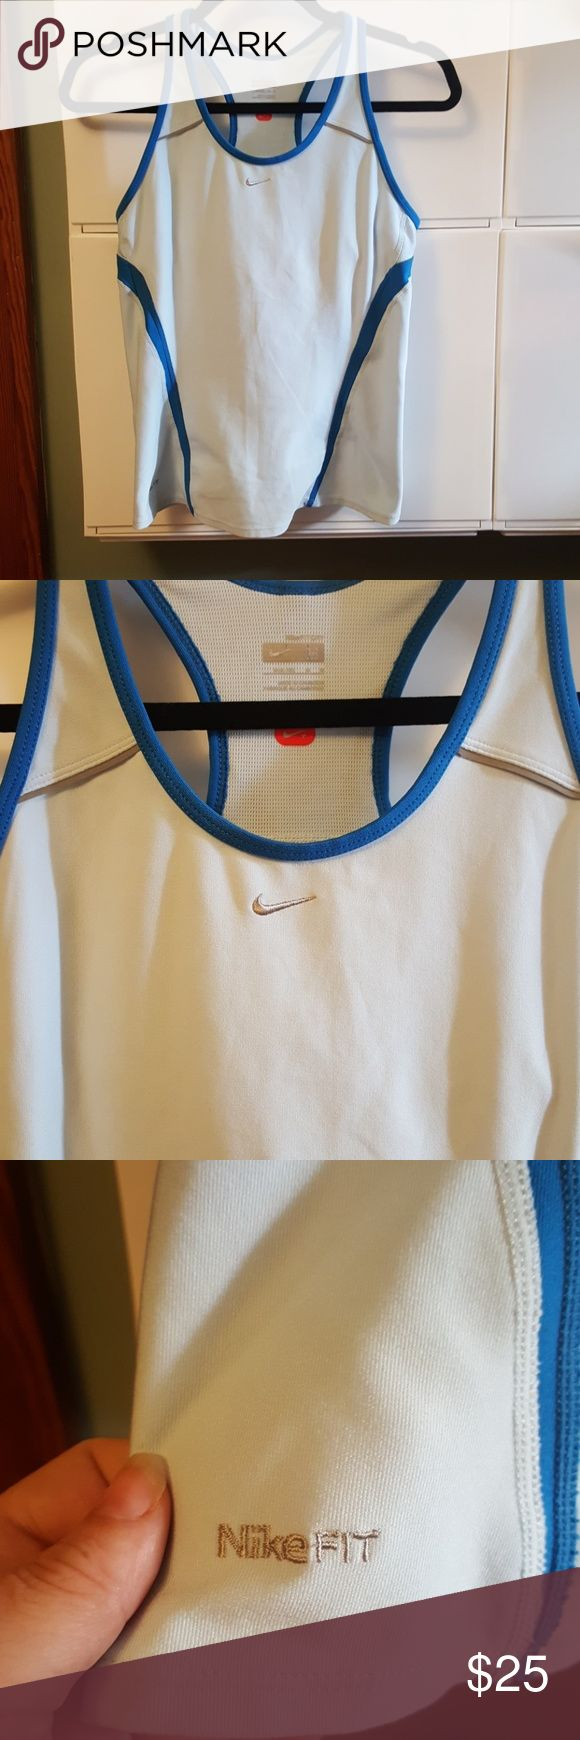 Nikefit  dry medium women's running top Nike fit dry medium women's running top features pockets in the back and racerback design also has built-in bra 92% polyester 9% spandex Nike Tops Tank Tops